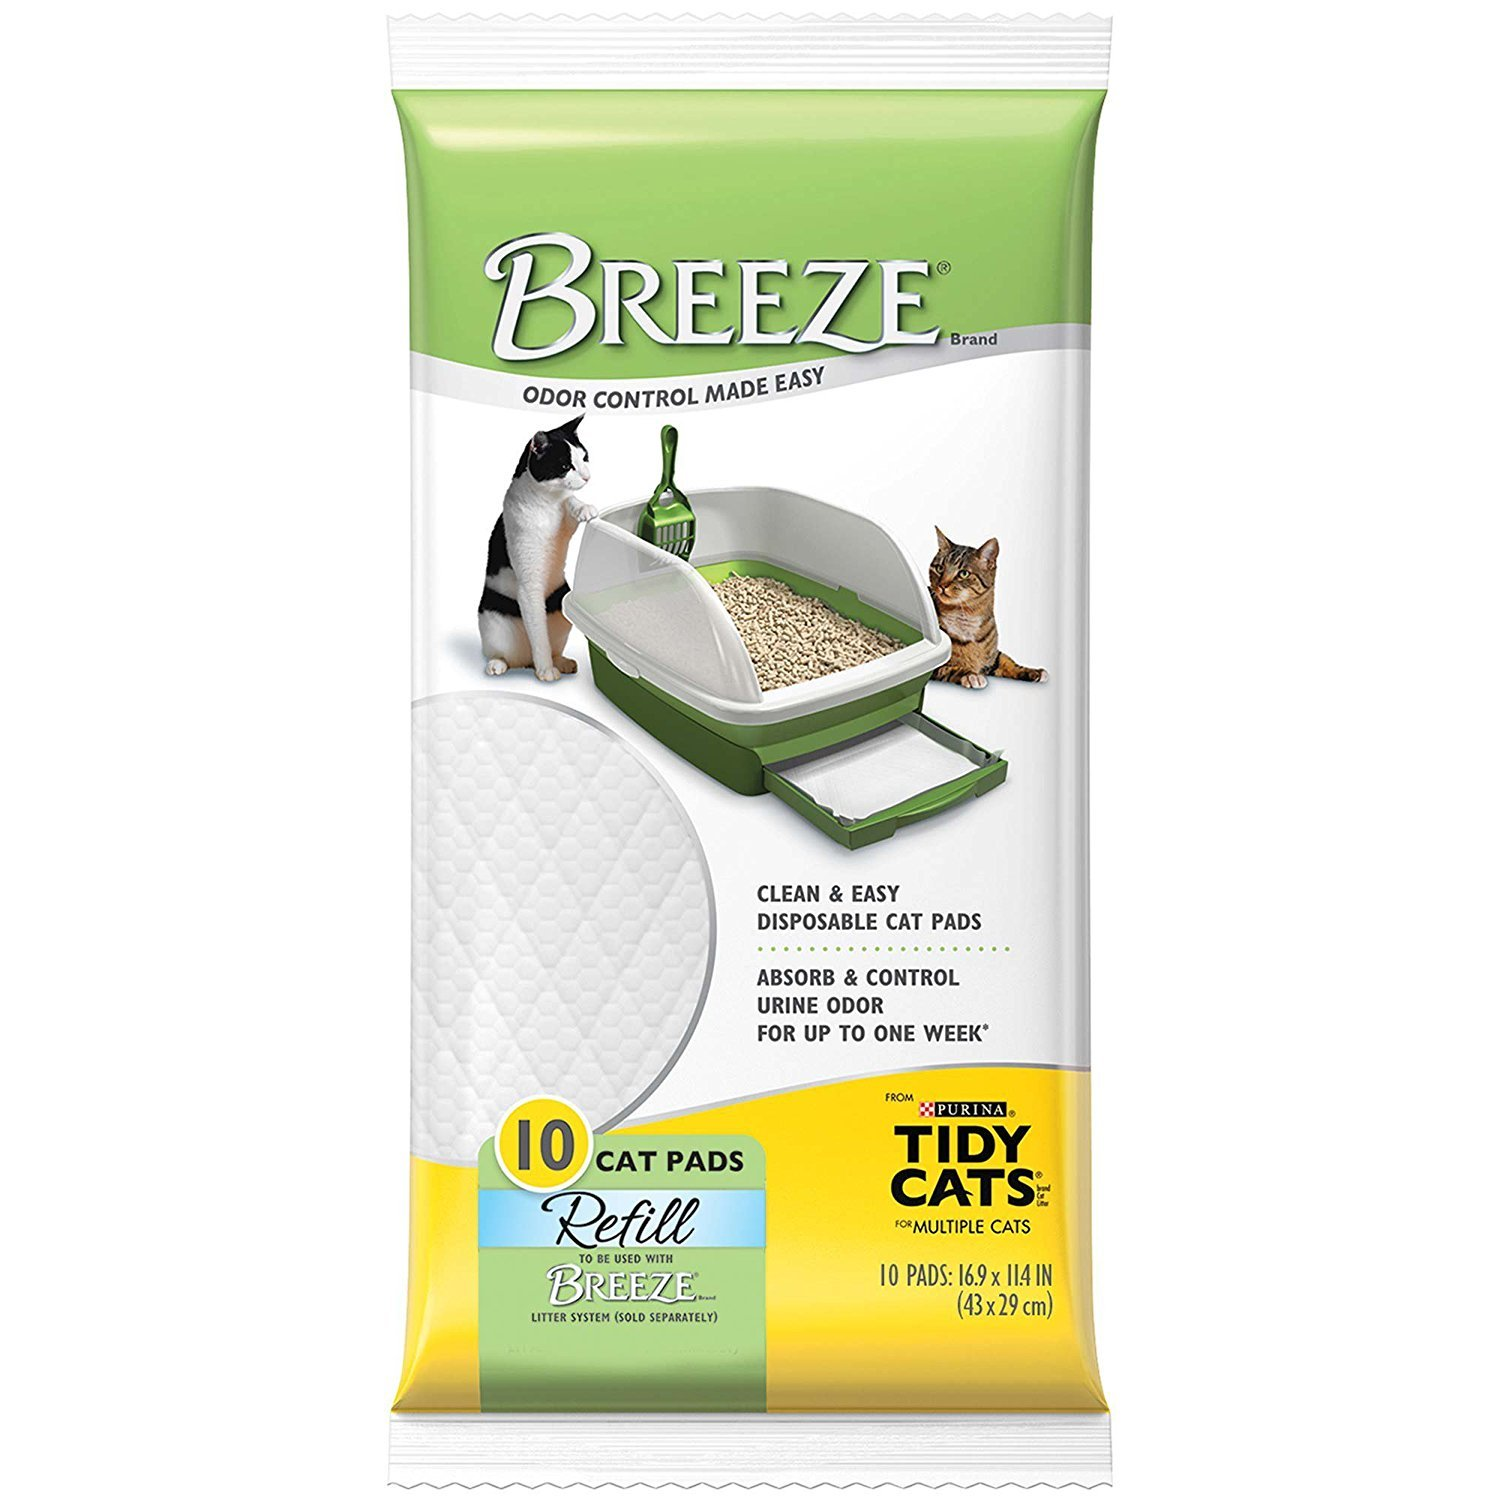 Case of 10 - Tidy Cats Breeze Cat Pads